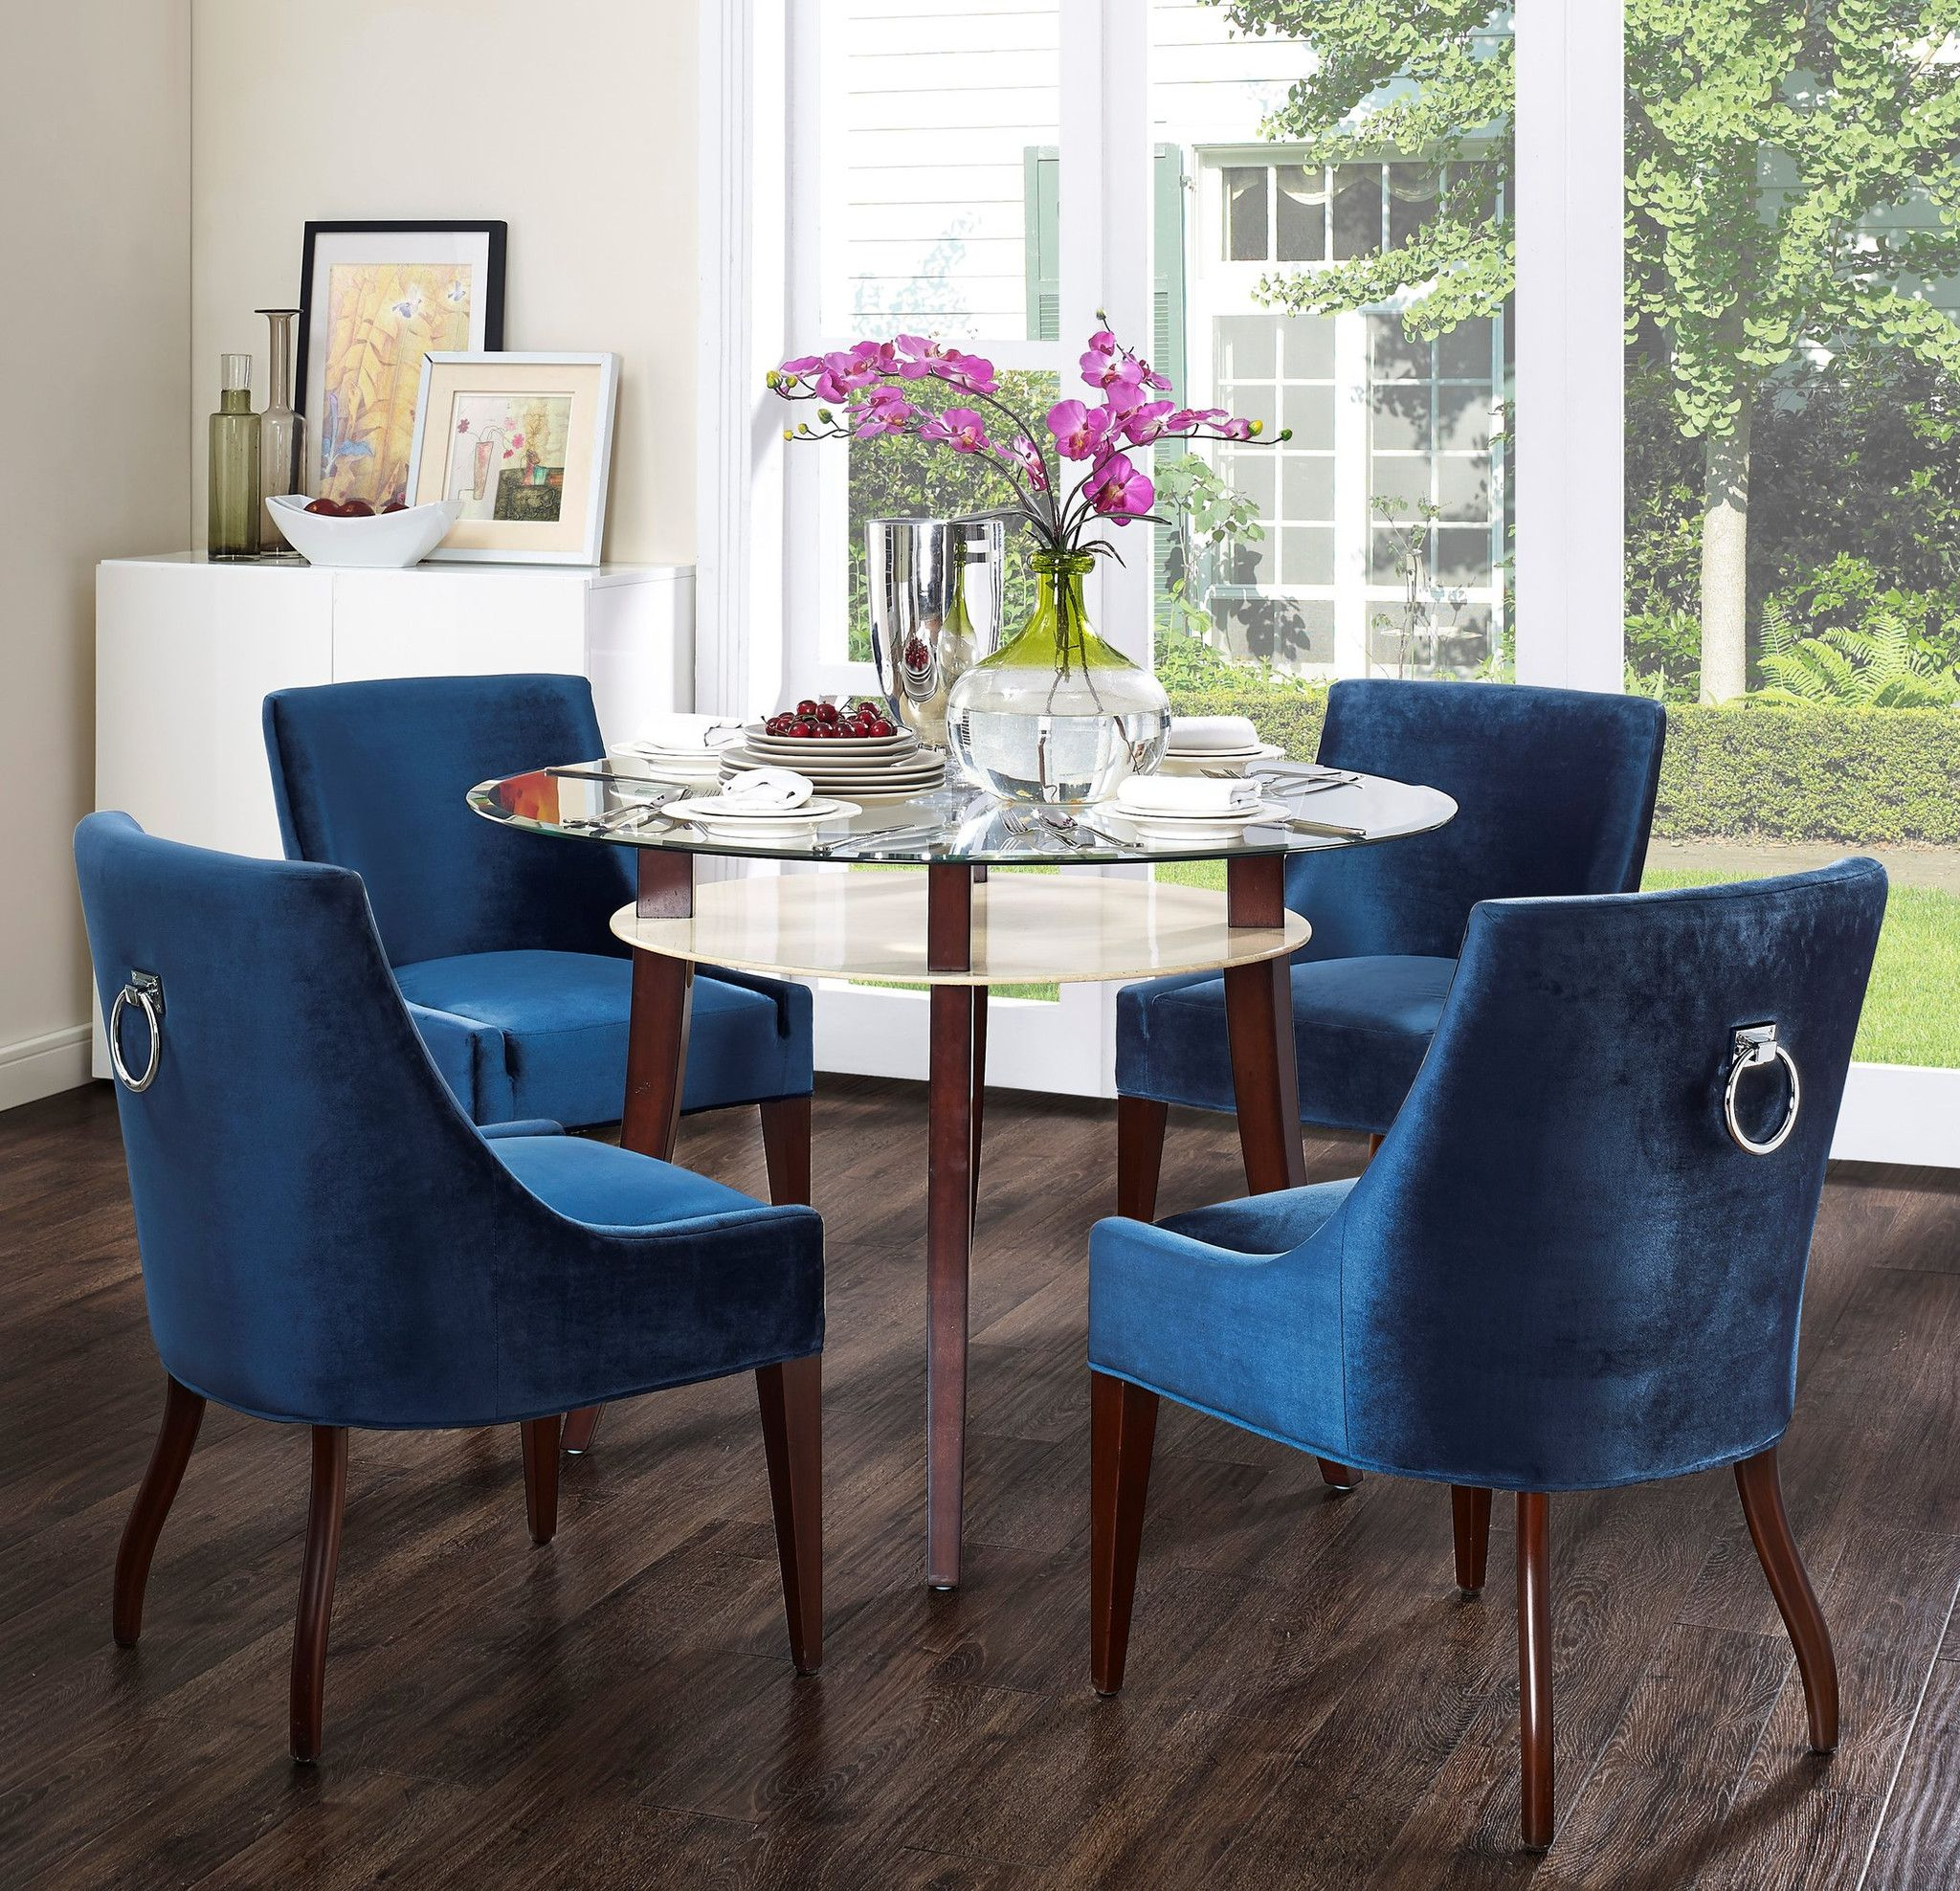 Rover blue velvet dining chair set of 2 from emfurn